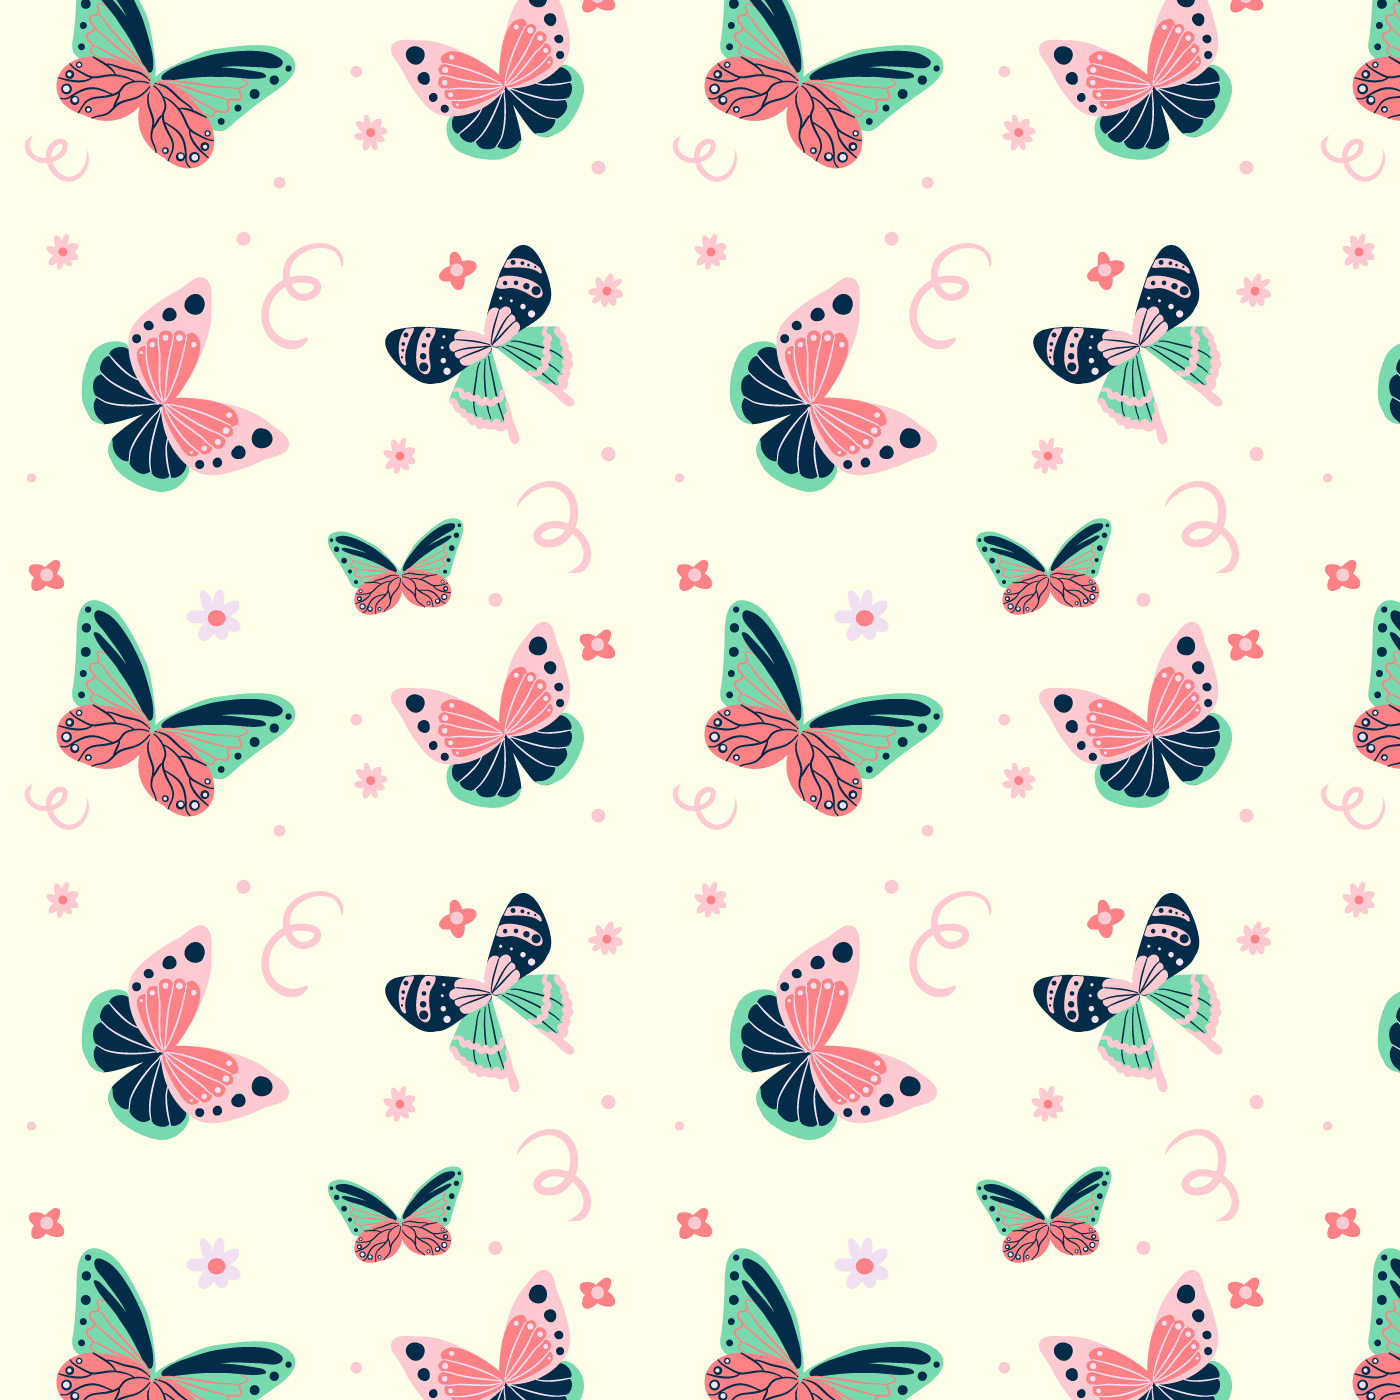 Cute Butterfly Pattern With Floral Elements